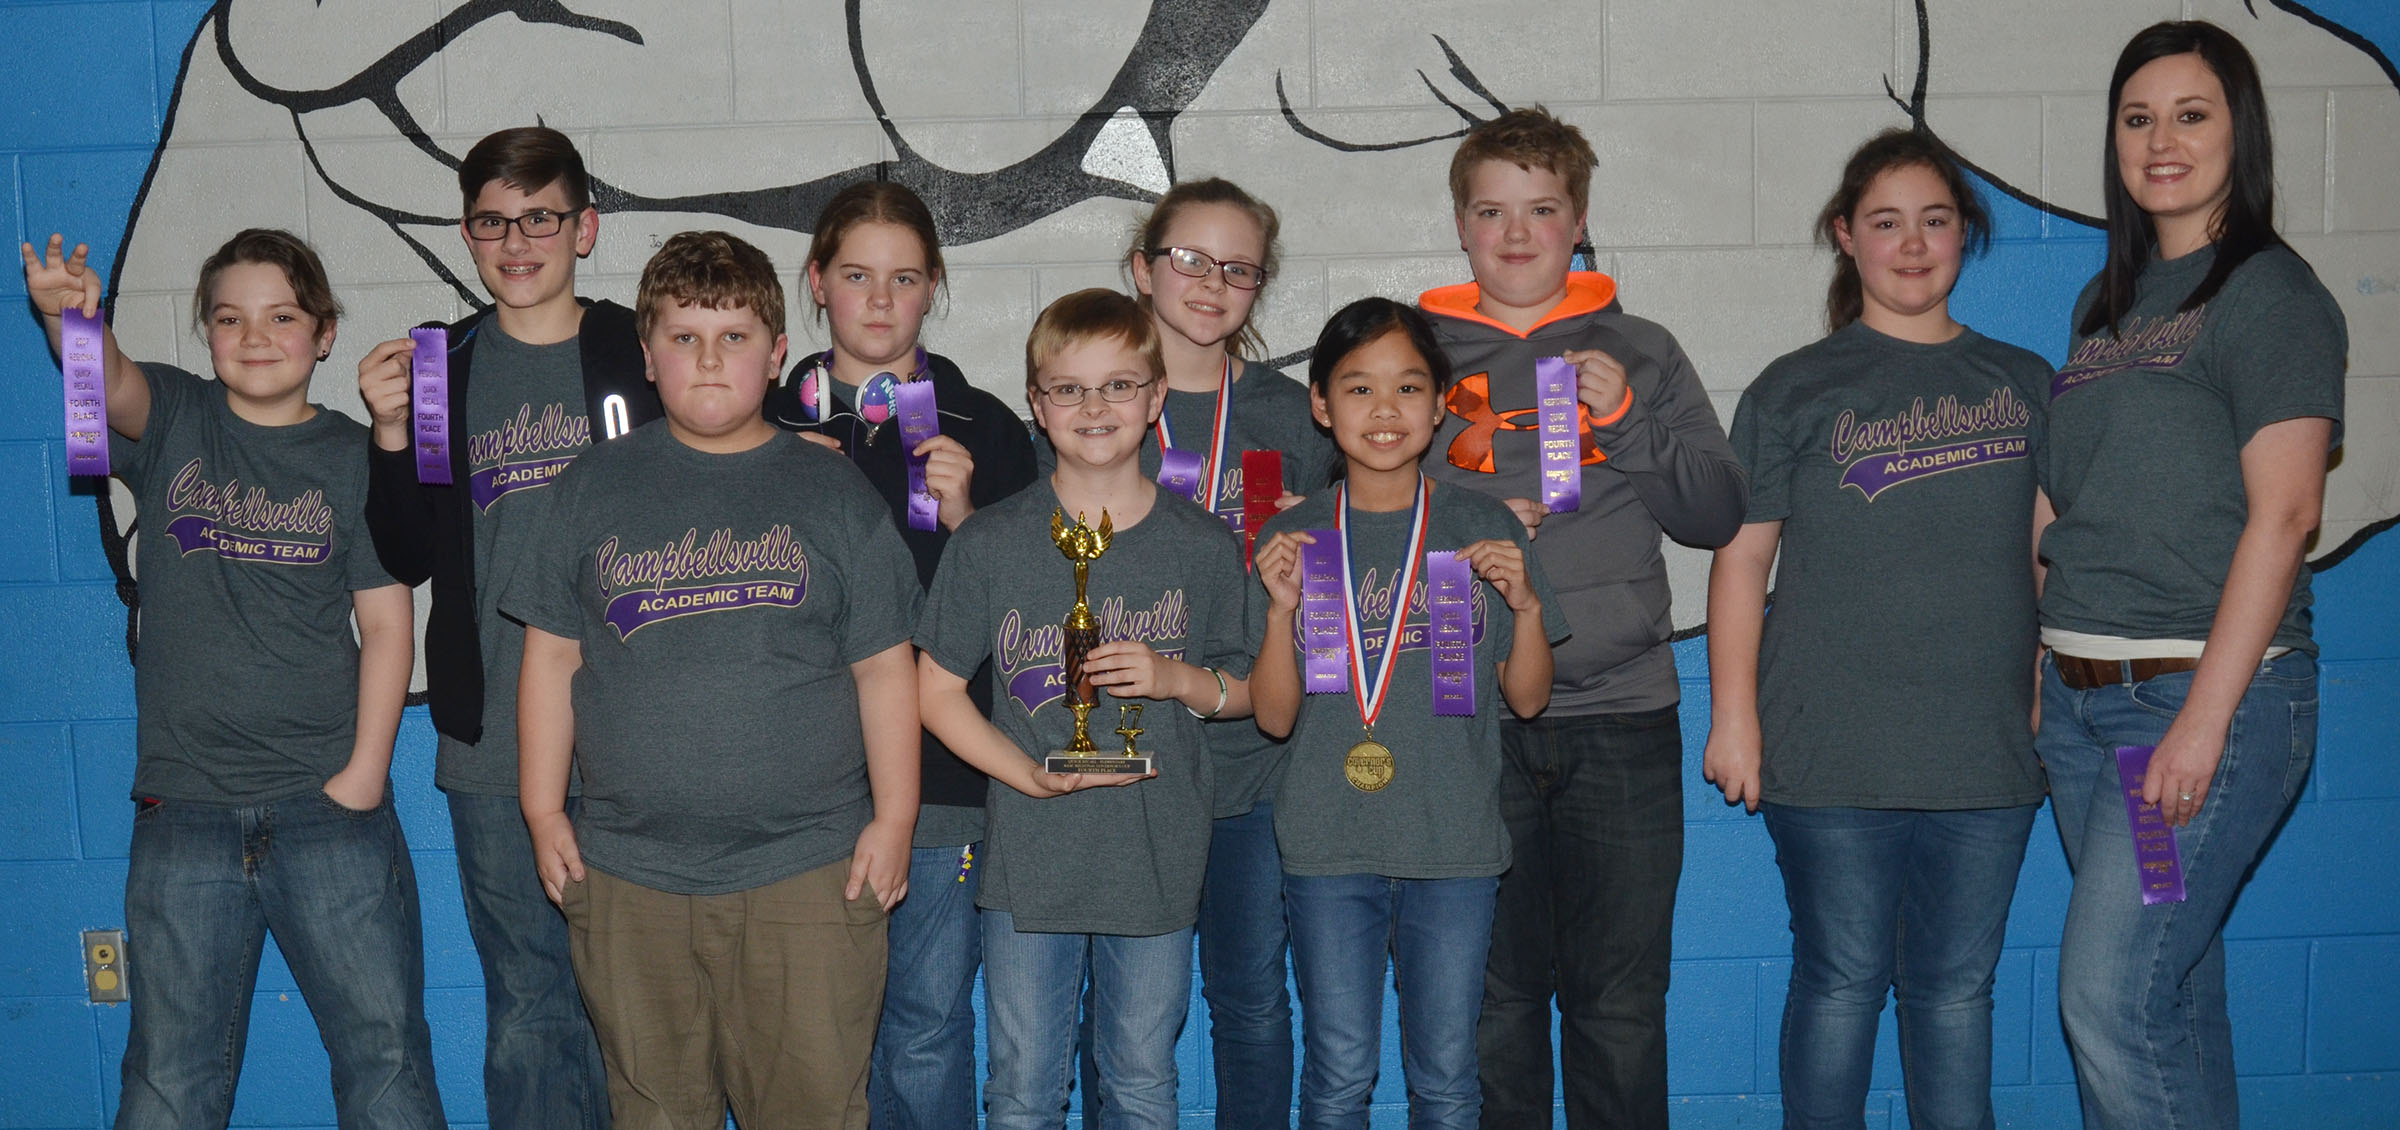 Campbellsville Middle School fourth- and fifth-grade academic team members finished in seventh place overall at region competition and fourth place in quick recall. From left, front, are fourth-grader Zeke Harris and fifth-graders Caleb Holt and Angelica Seng. Back, fifth-graders Kayden Birdwell, Isaac Garrison, Layla Steen, Karlie Cox, Ryan Grubbs and Brianna Dobson and coach Samantha Coomer. Absent from the photo are fourth-graders Logan England and Gabriel Noyola.